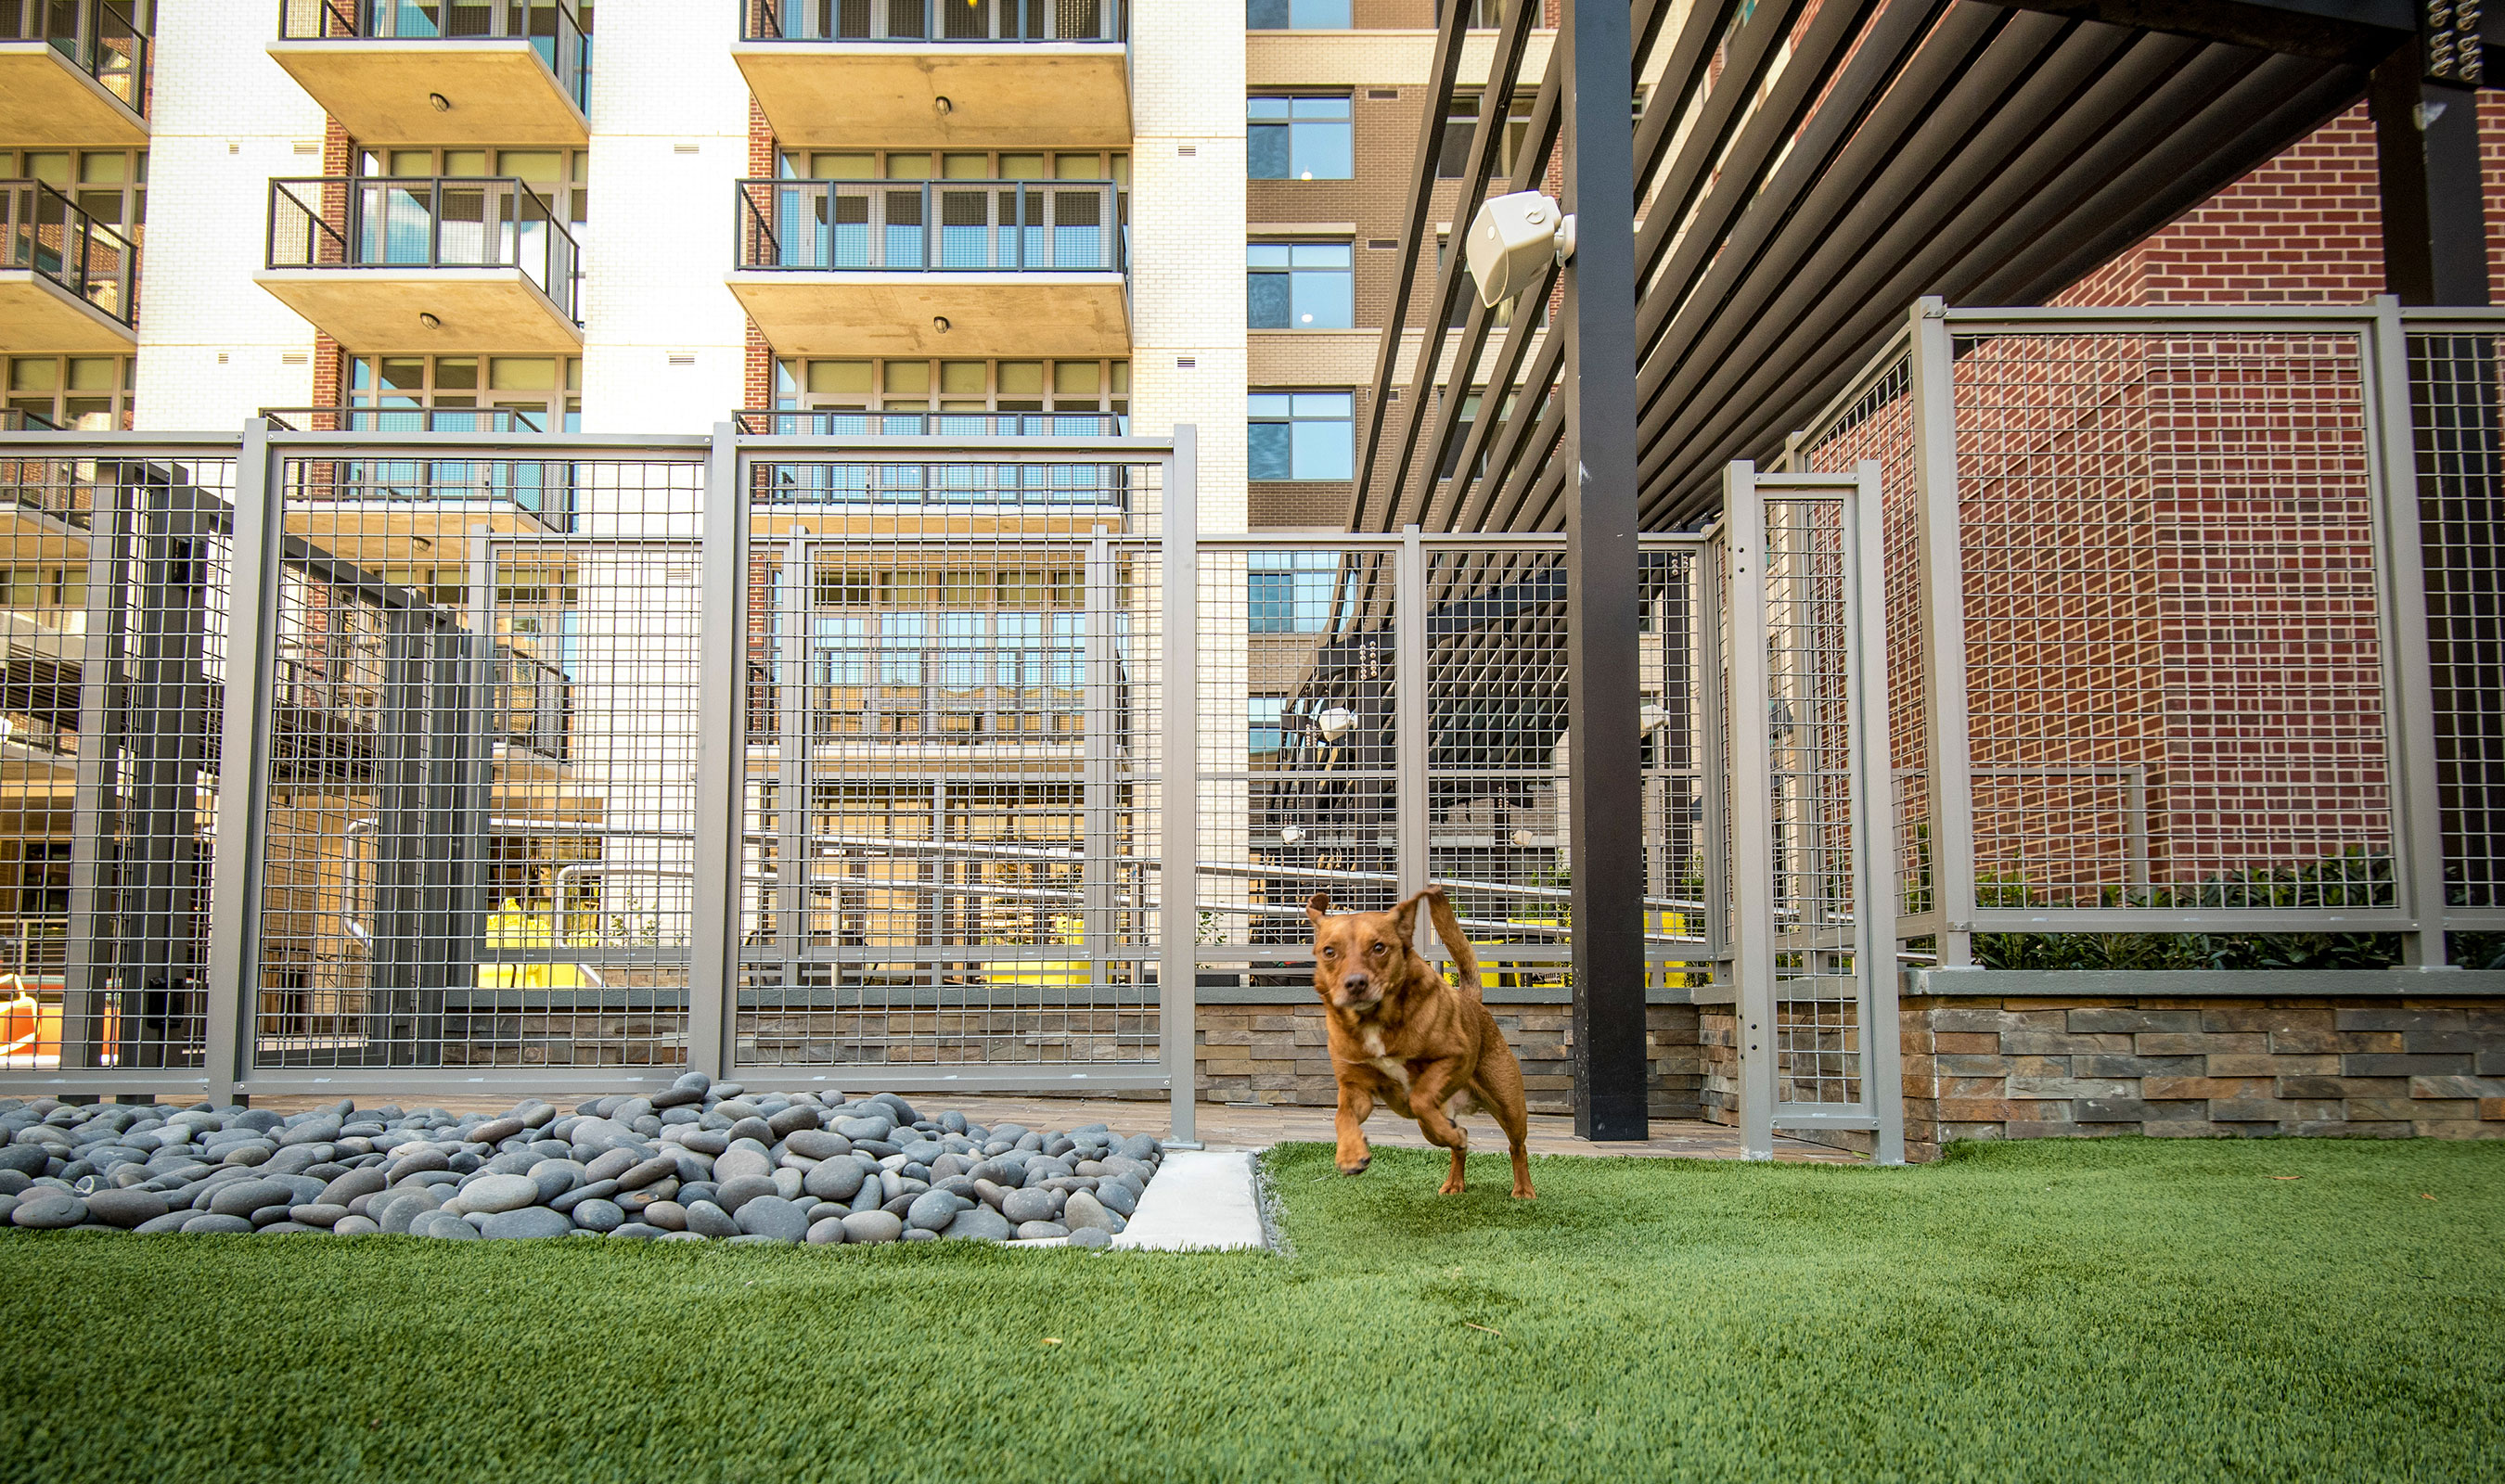 Strong and durable, Banker Wire's L-62 woven wire mesh pattern makes a great choice for a pet park enclosure.